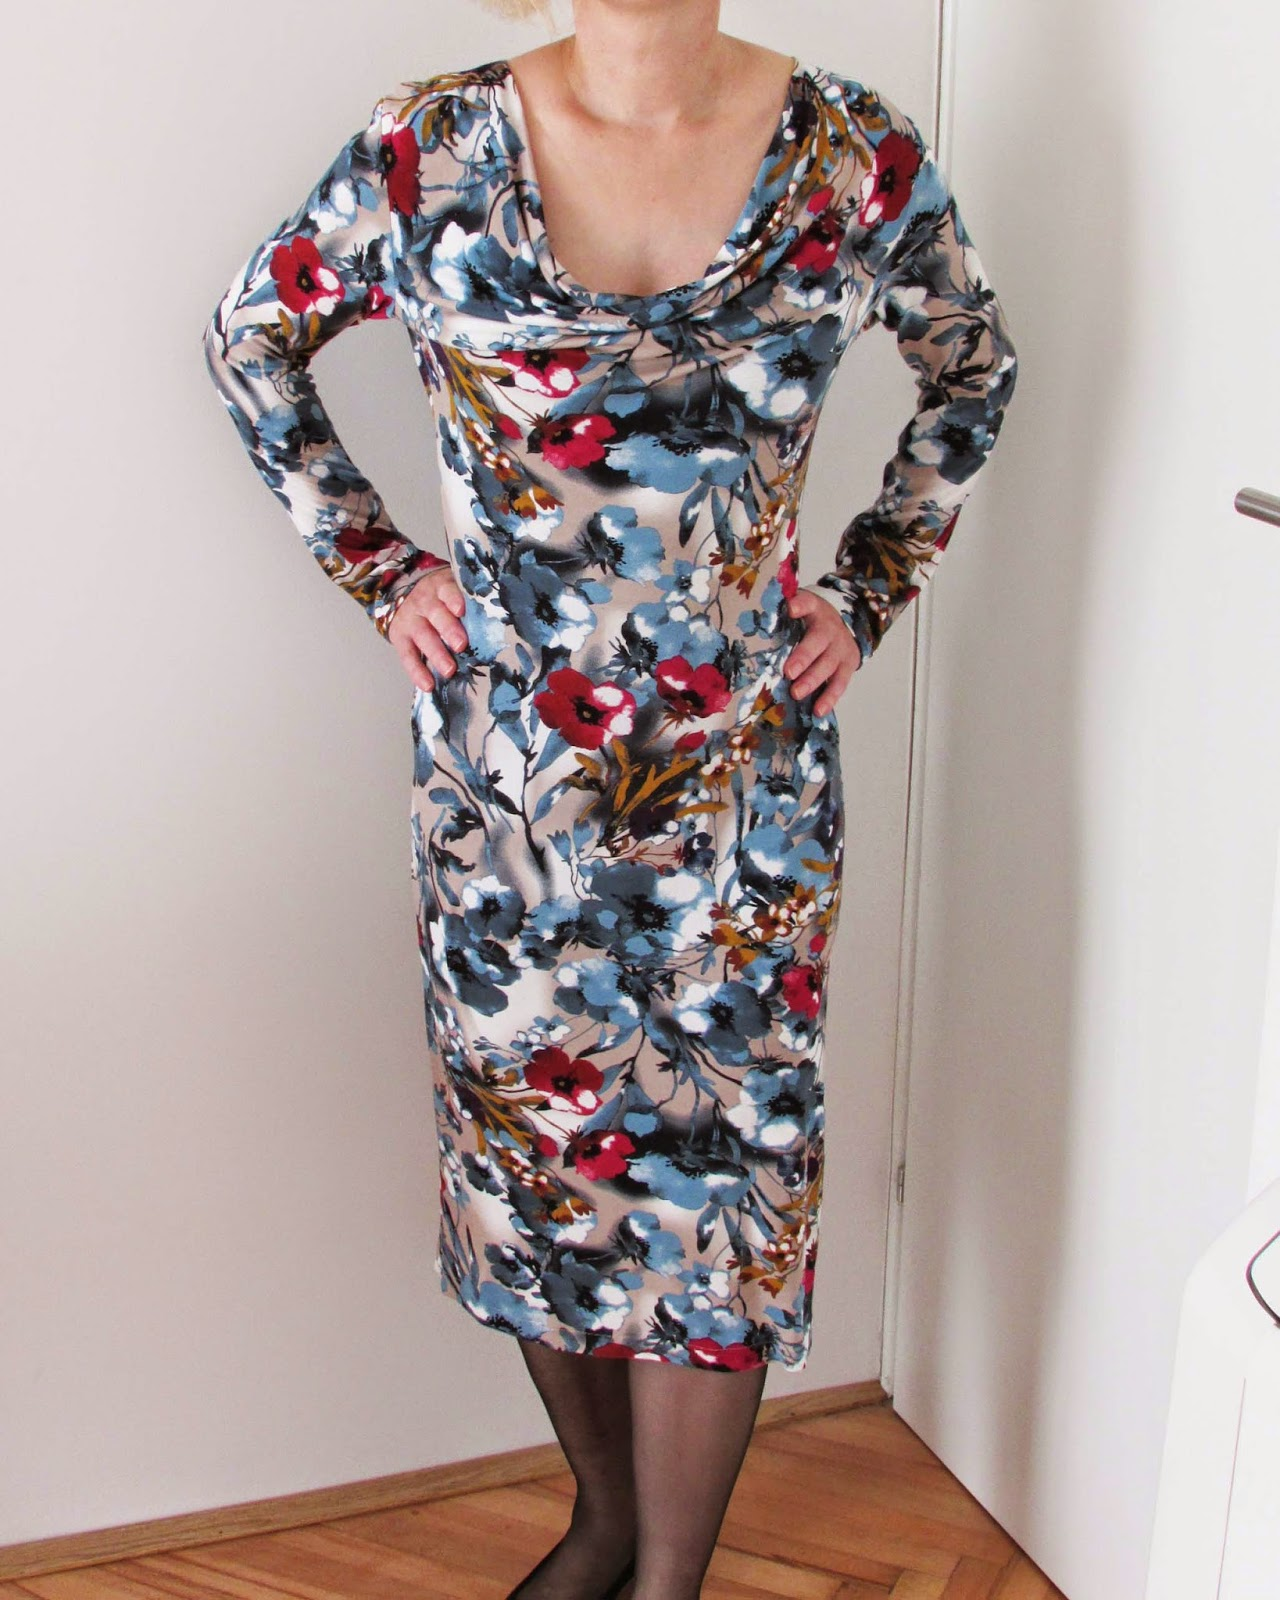 http://ladylinaland.blogspot.com/2015/03/cowl-neck-jersey-dress.html